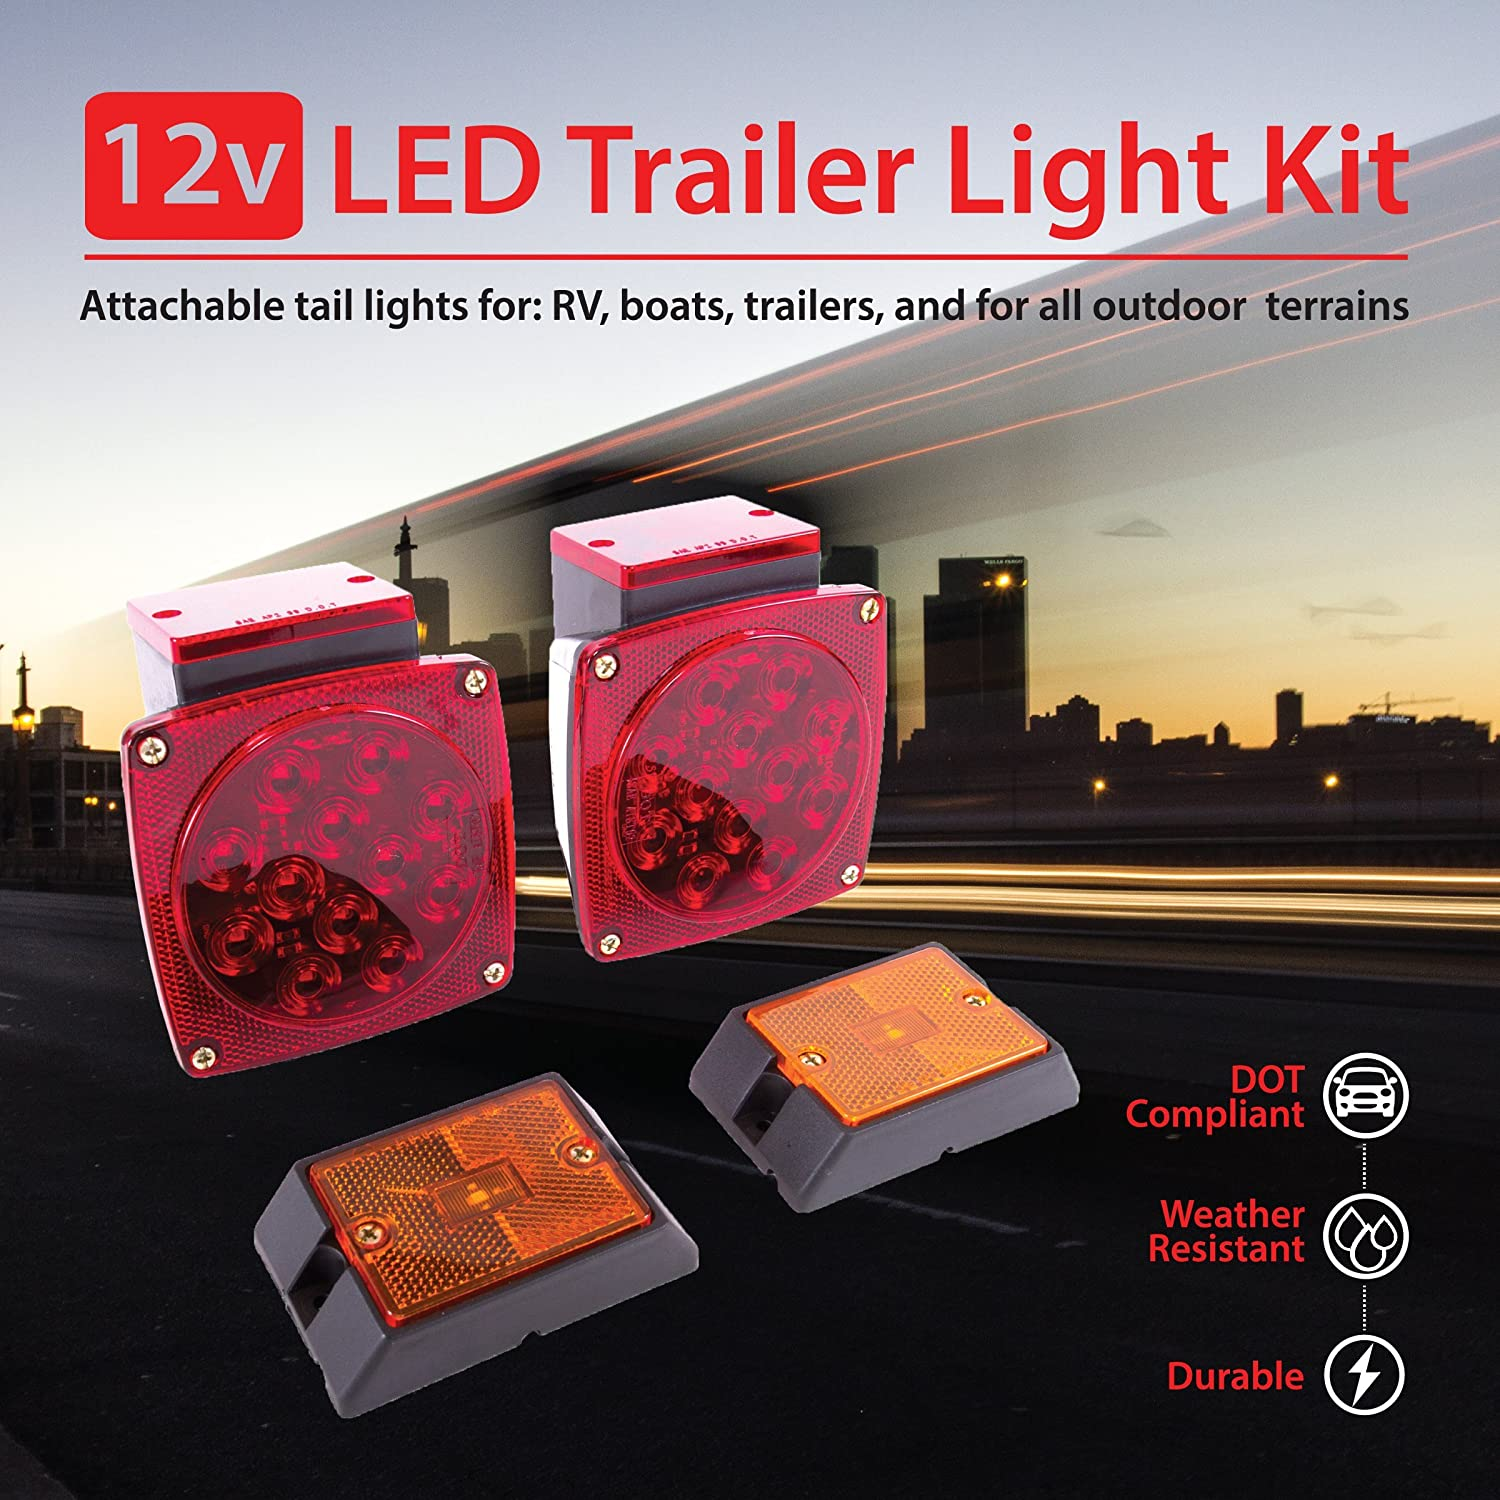 for All Outdoor terrains Marine Trailer Submersible Tail Lights for: RV Boat Wellmax 12V LED Trailer Light Kit DOT Compliant WM51084 Utility Bulbs for Easy Assembly